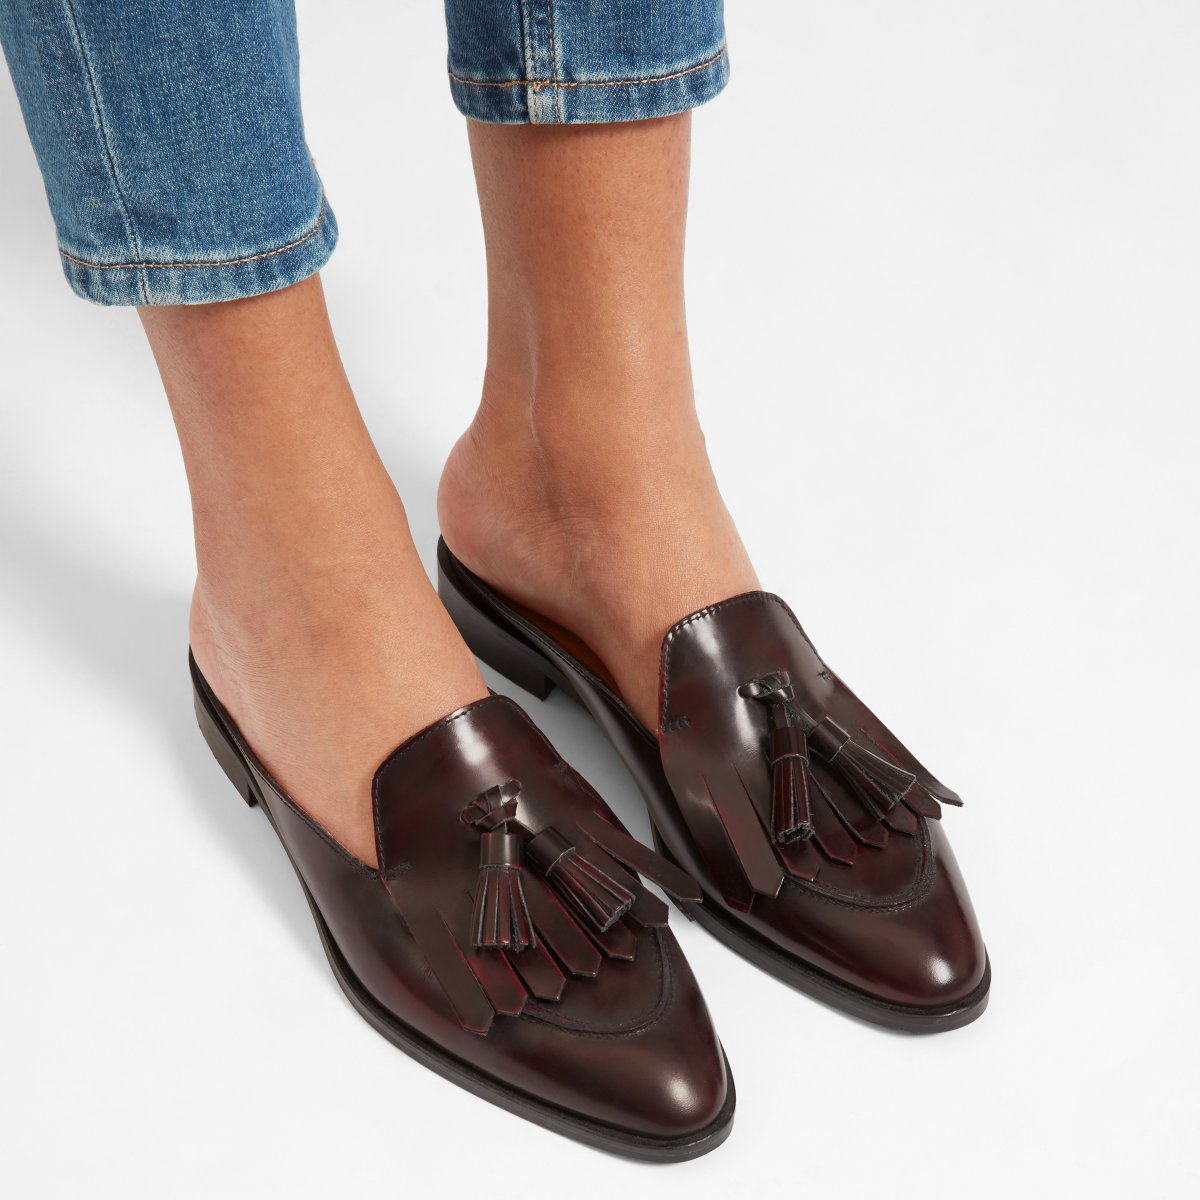 8d3fc43df85 The Modern Tassel Loafer Mule in Burgundy. Your browser does not support  HTML5 video. Here is the link to the video w tassle loafer burgandy .